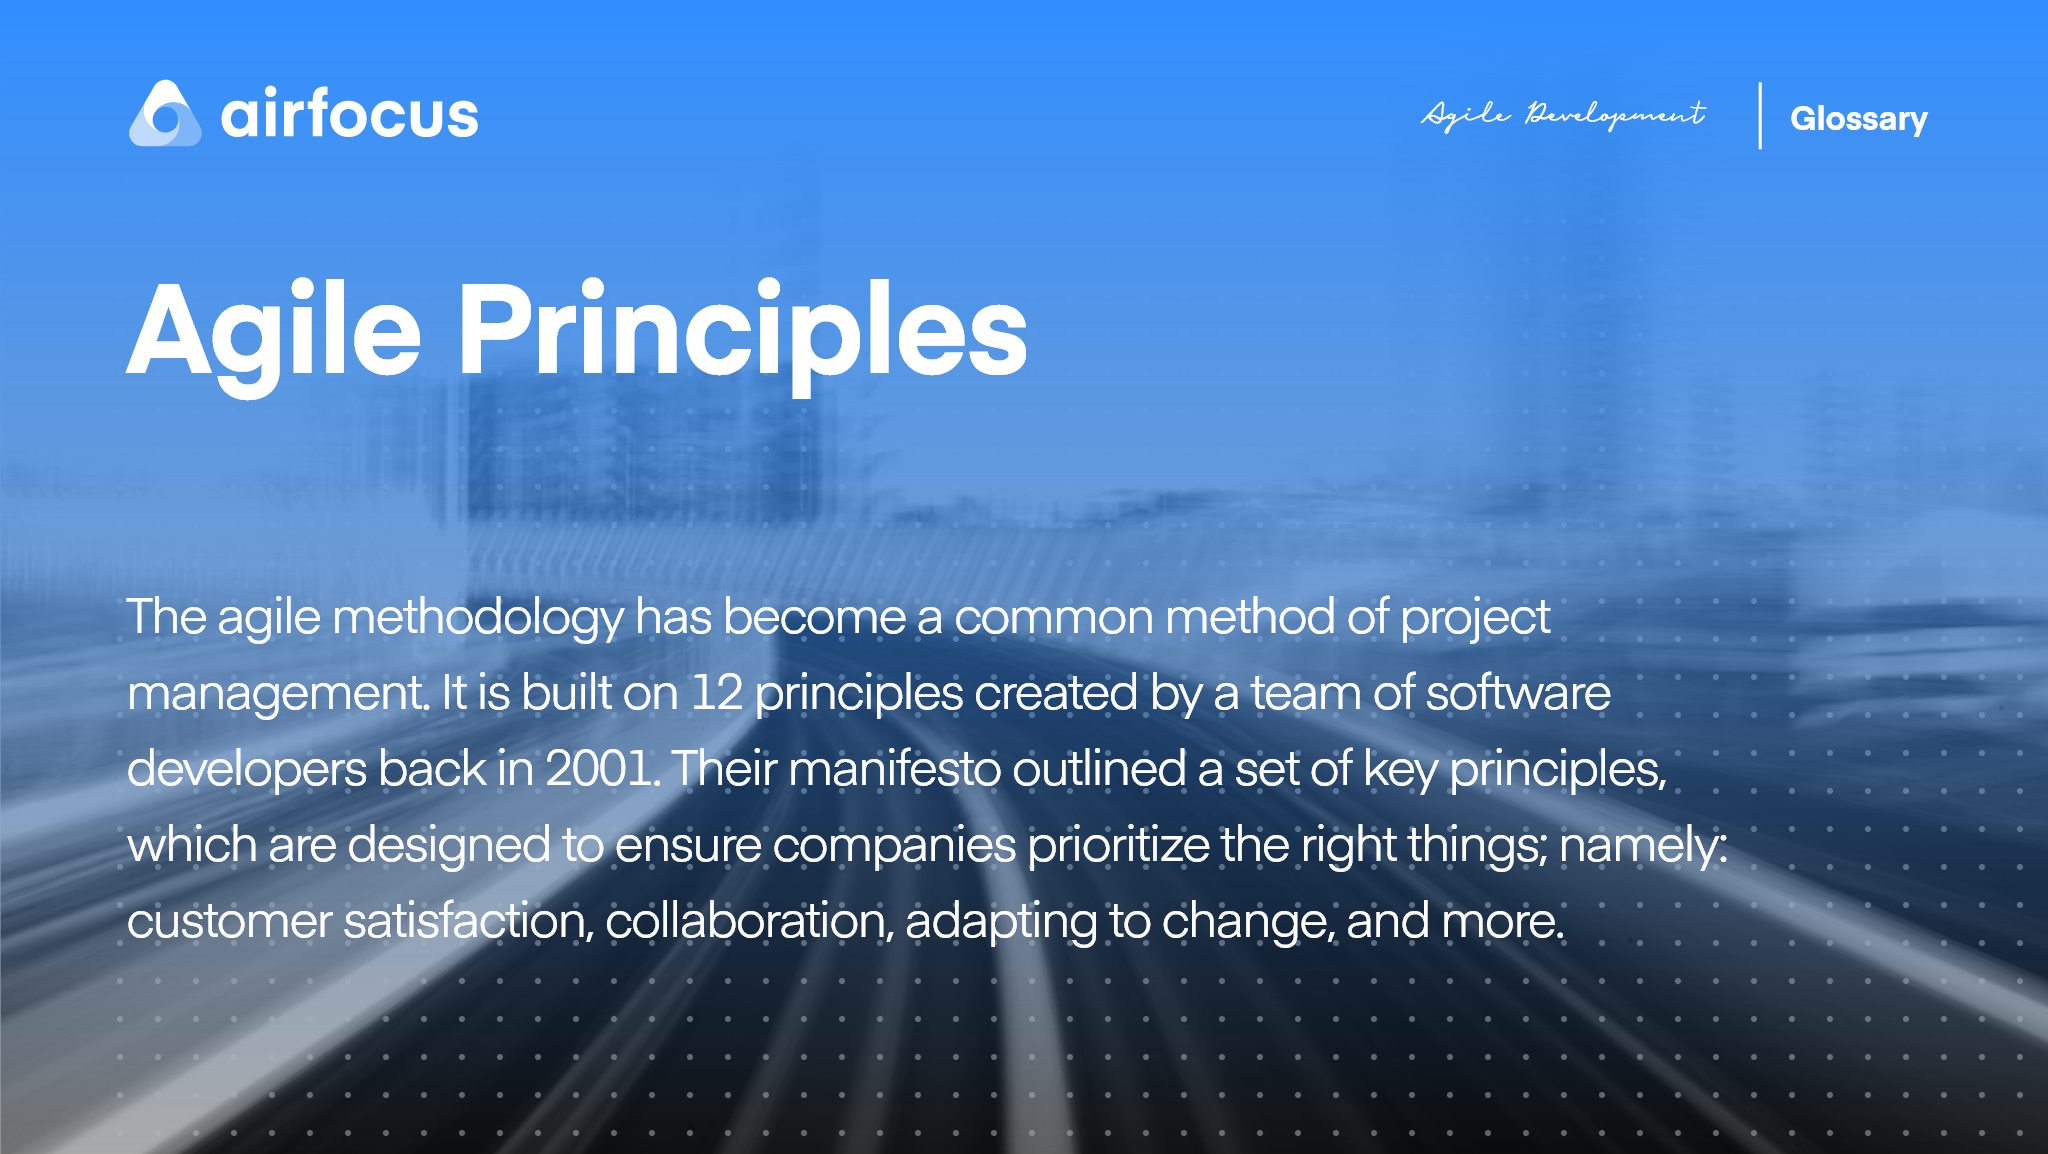 What Are Agile Principles